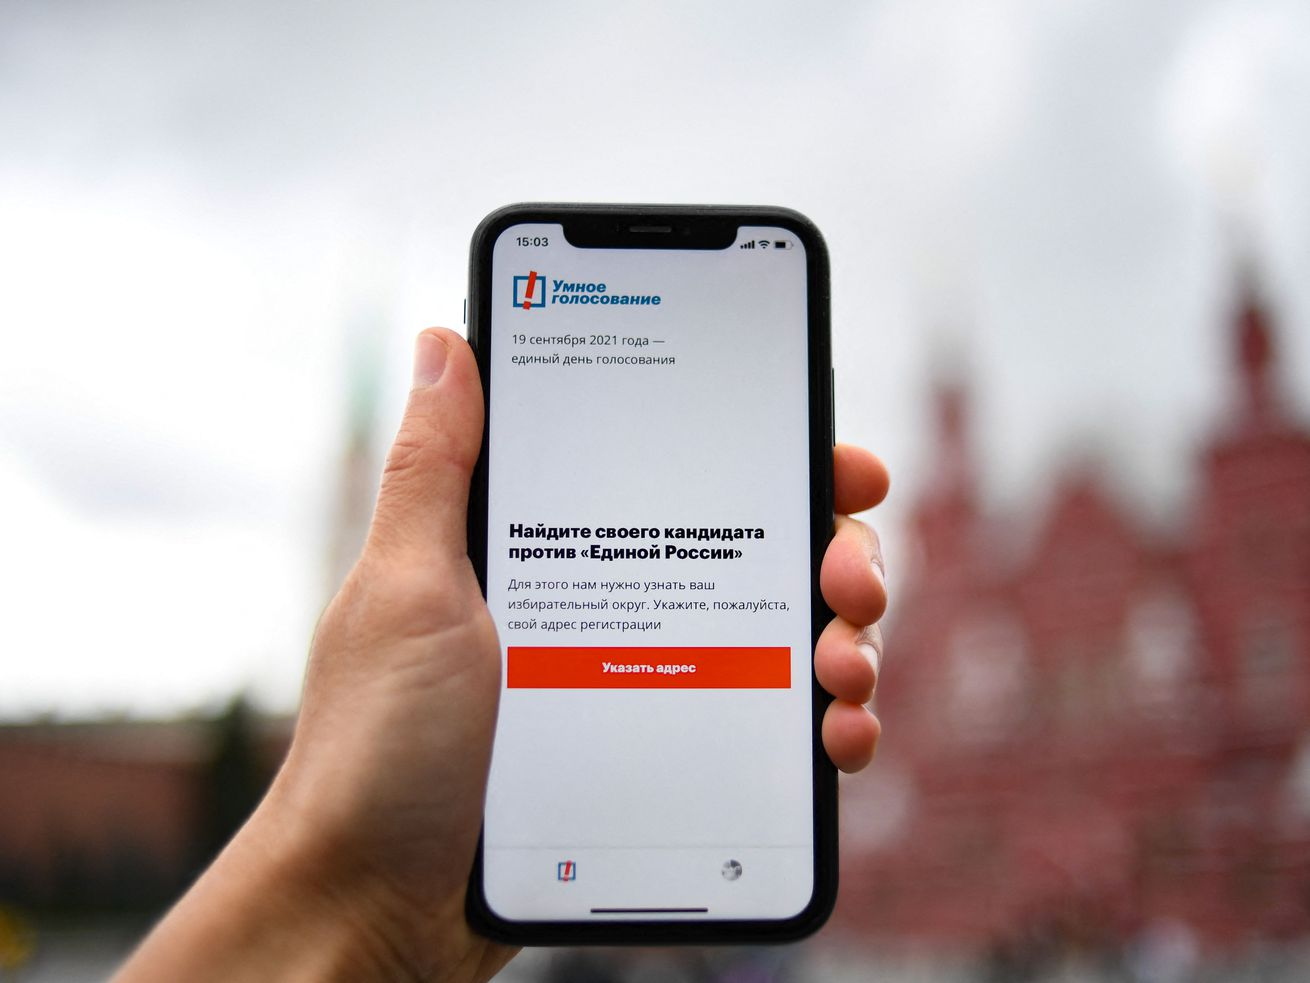 A hand holding an iPhone displaying the Smart Voting app. A Moscow building is visible in the distance.